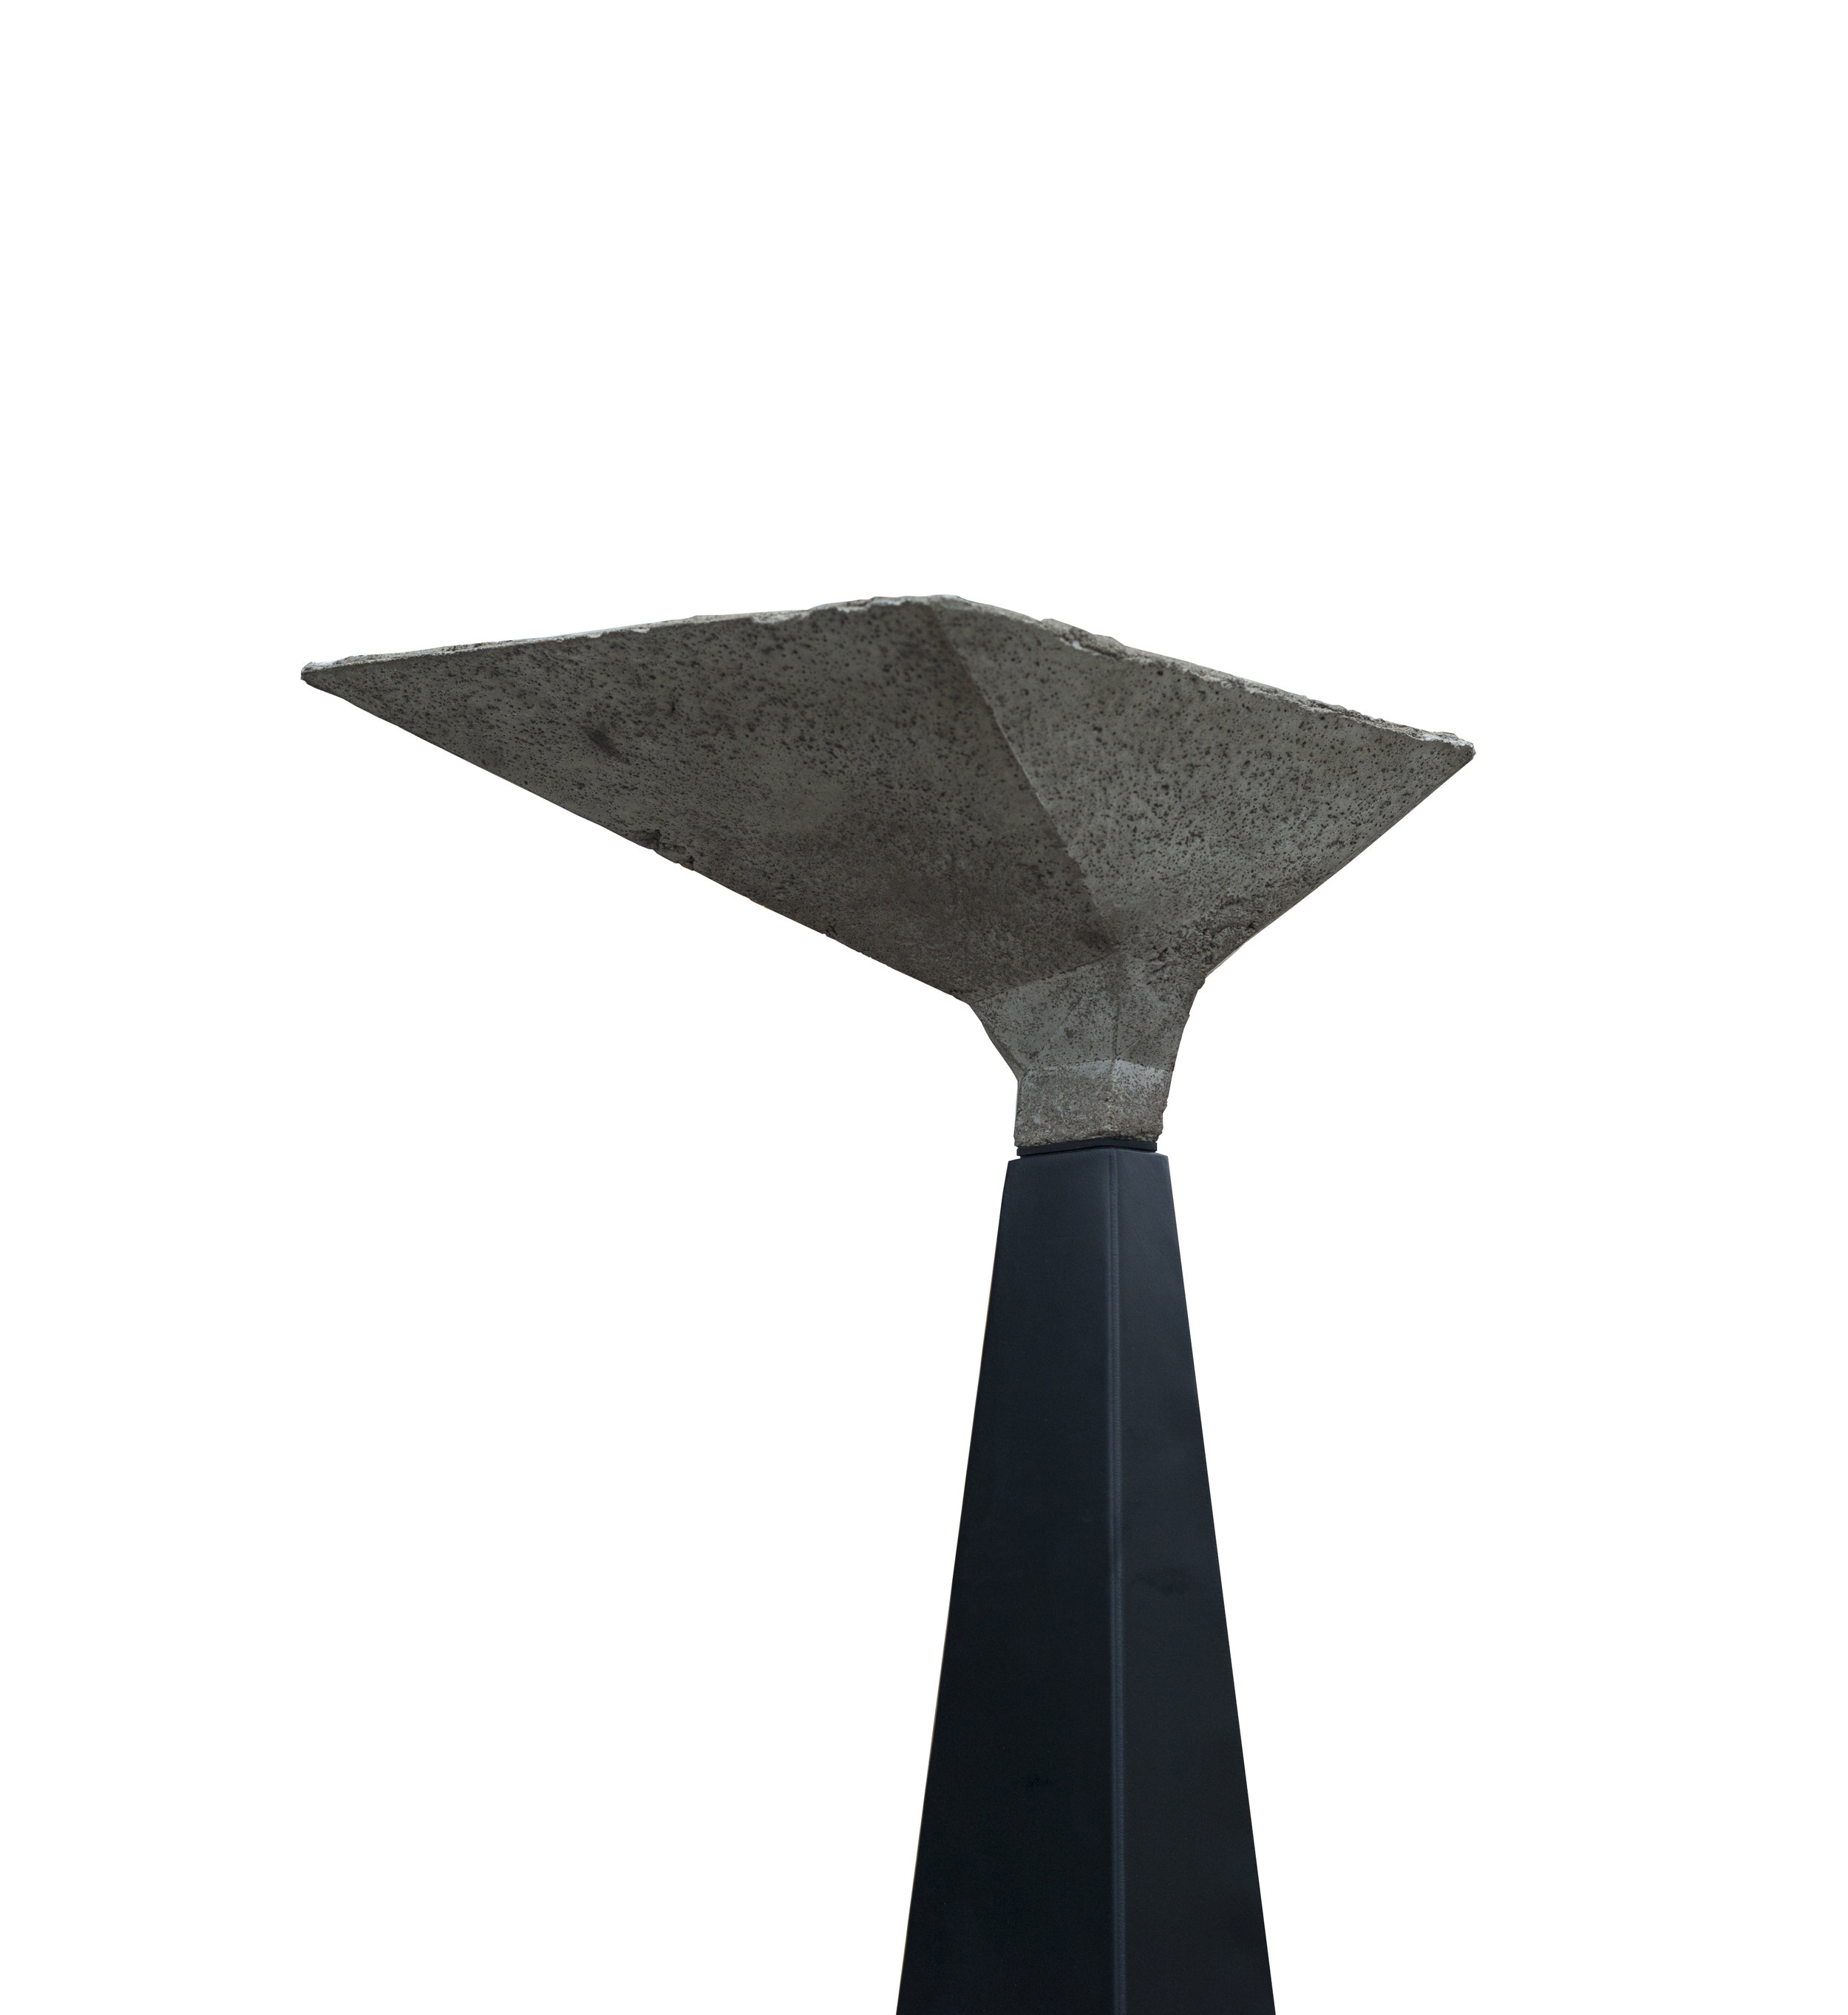 SHADOK-concrete-light-sculpture-floor lamp